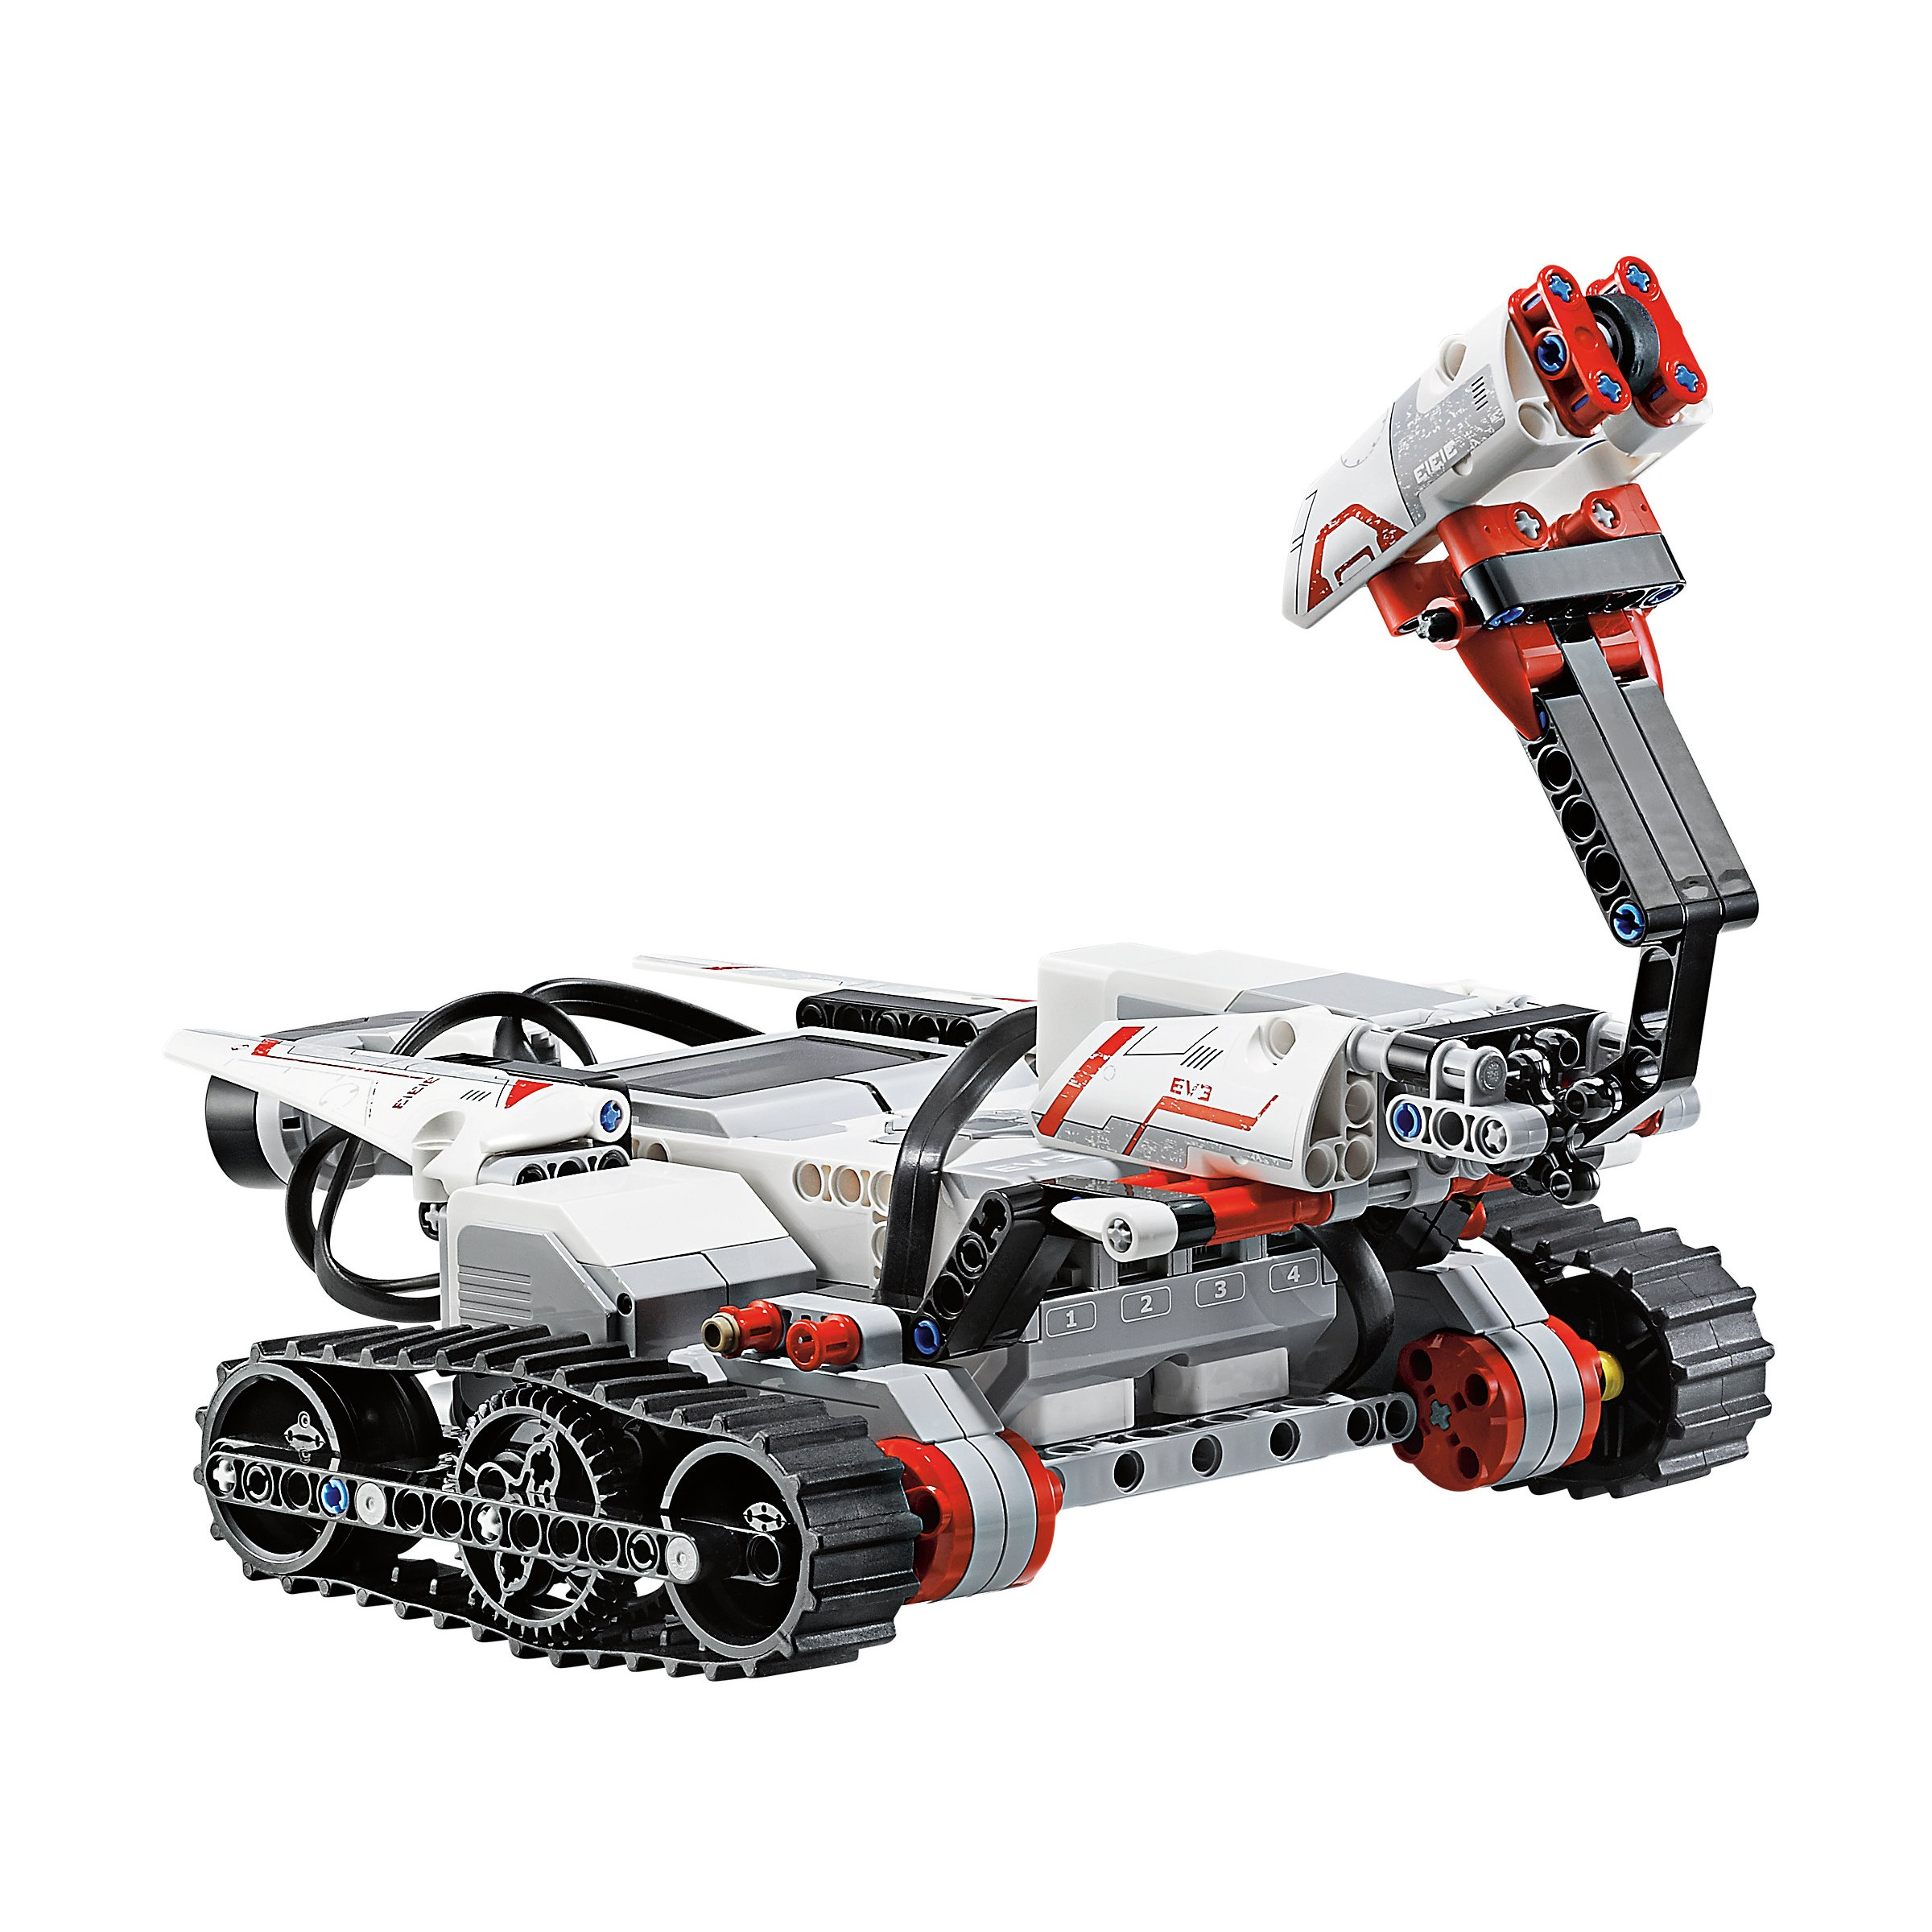 make paper helicopter with Lego 31313 Mindstorms Ev3 on Watch further 504755070707483804 likewise Watch moreover Watch moreover Curt Schilling Explains Why After Being Sacked Espn He Voting Trump.